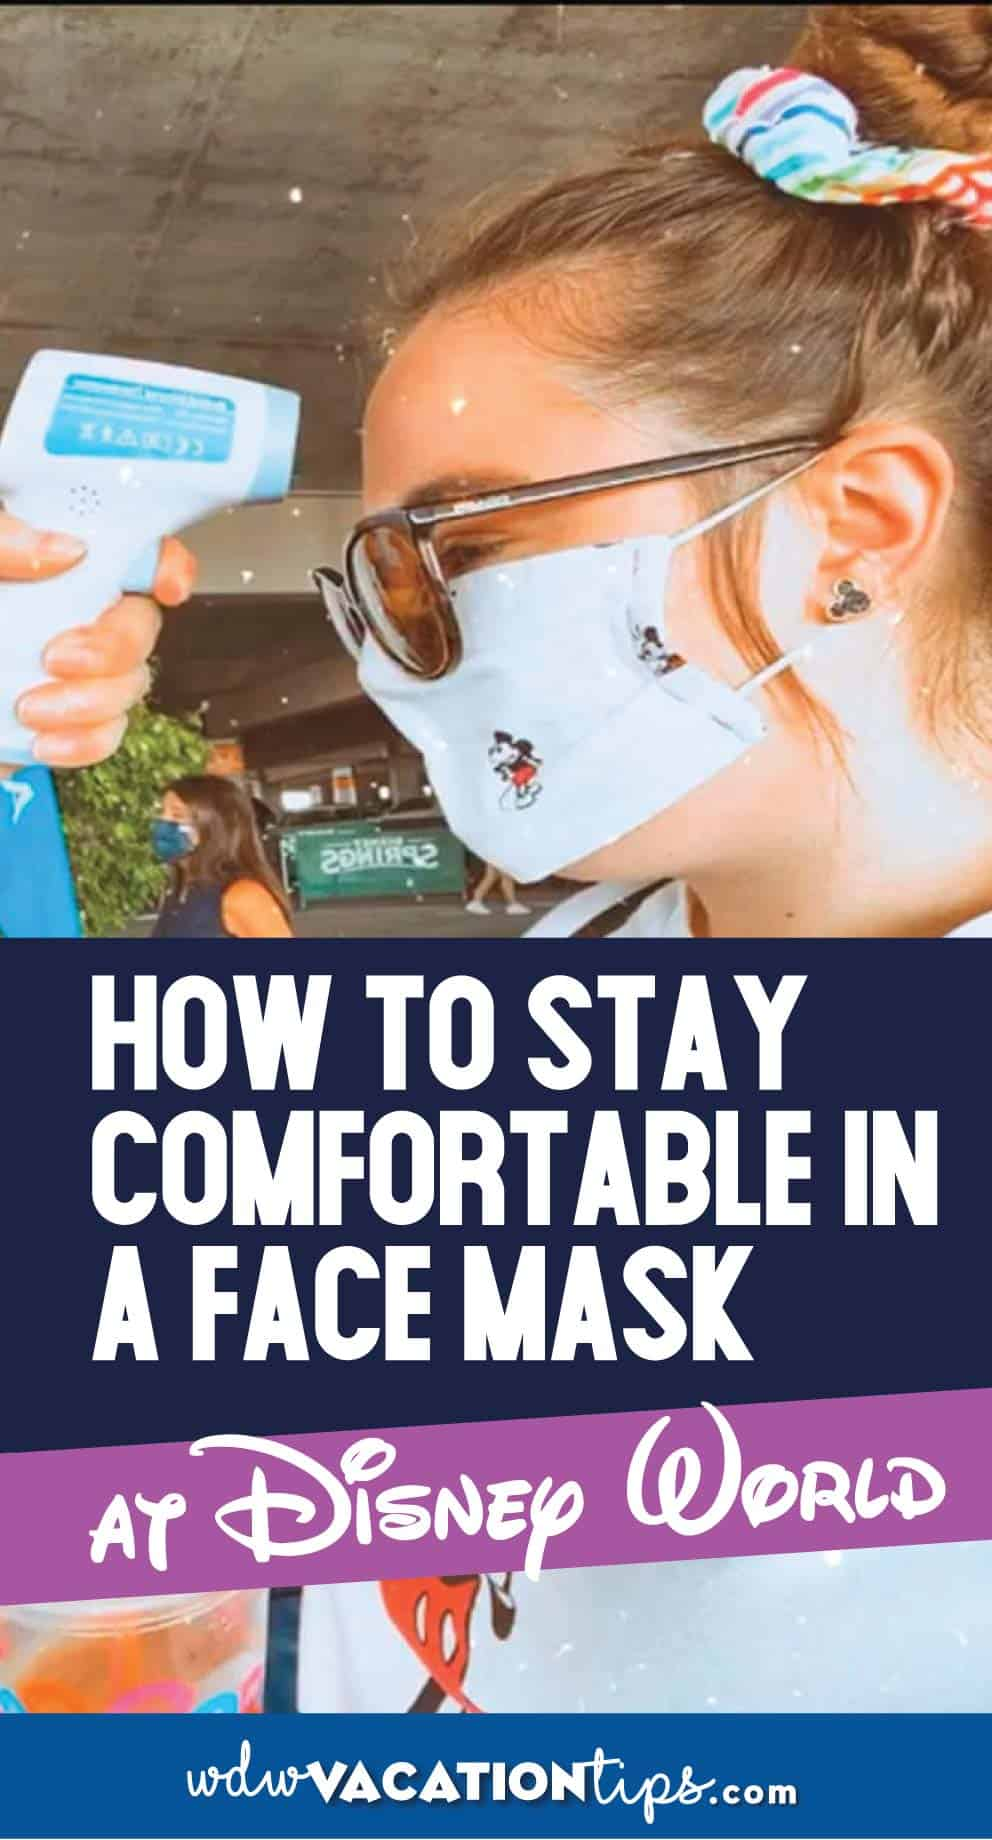 How to Stay Comfortable Wearing a Mask at Disney World 7